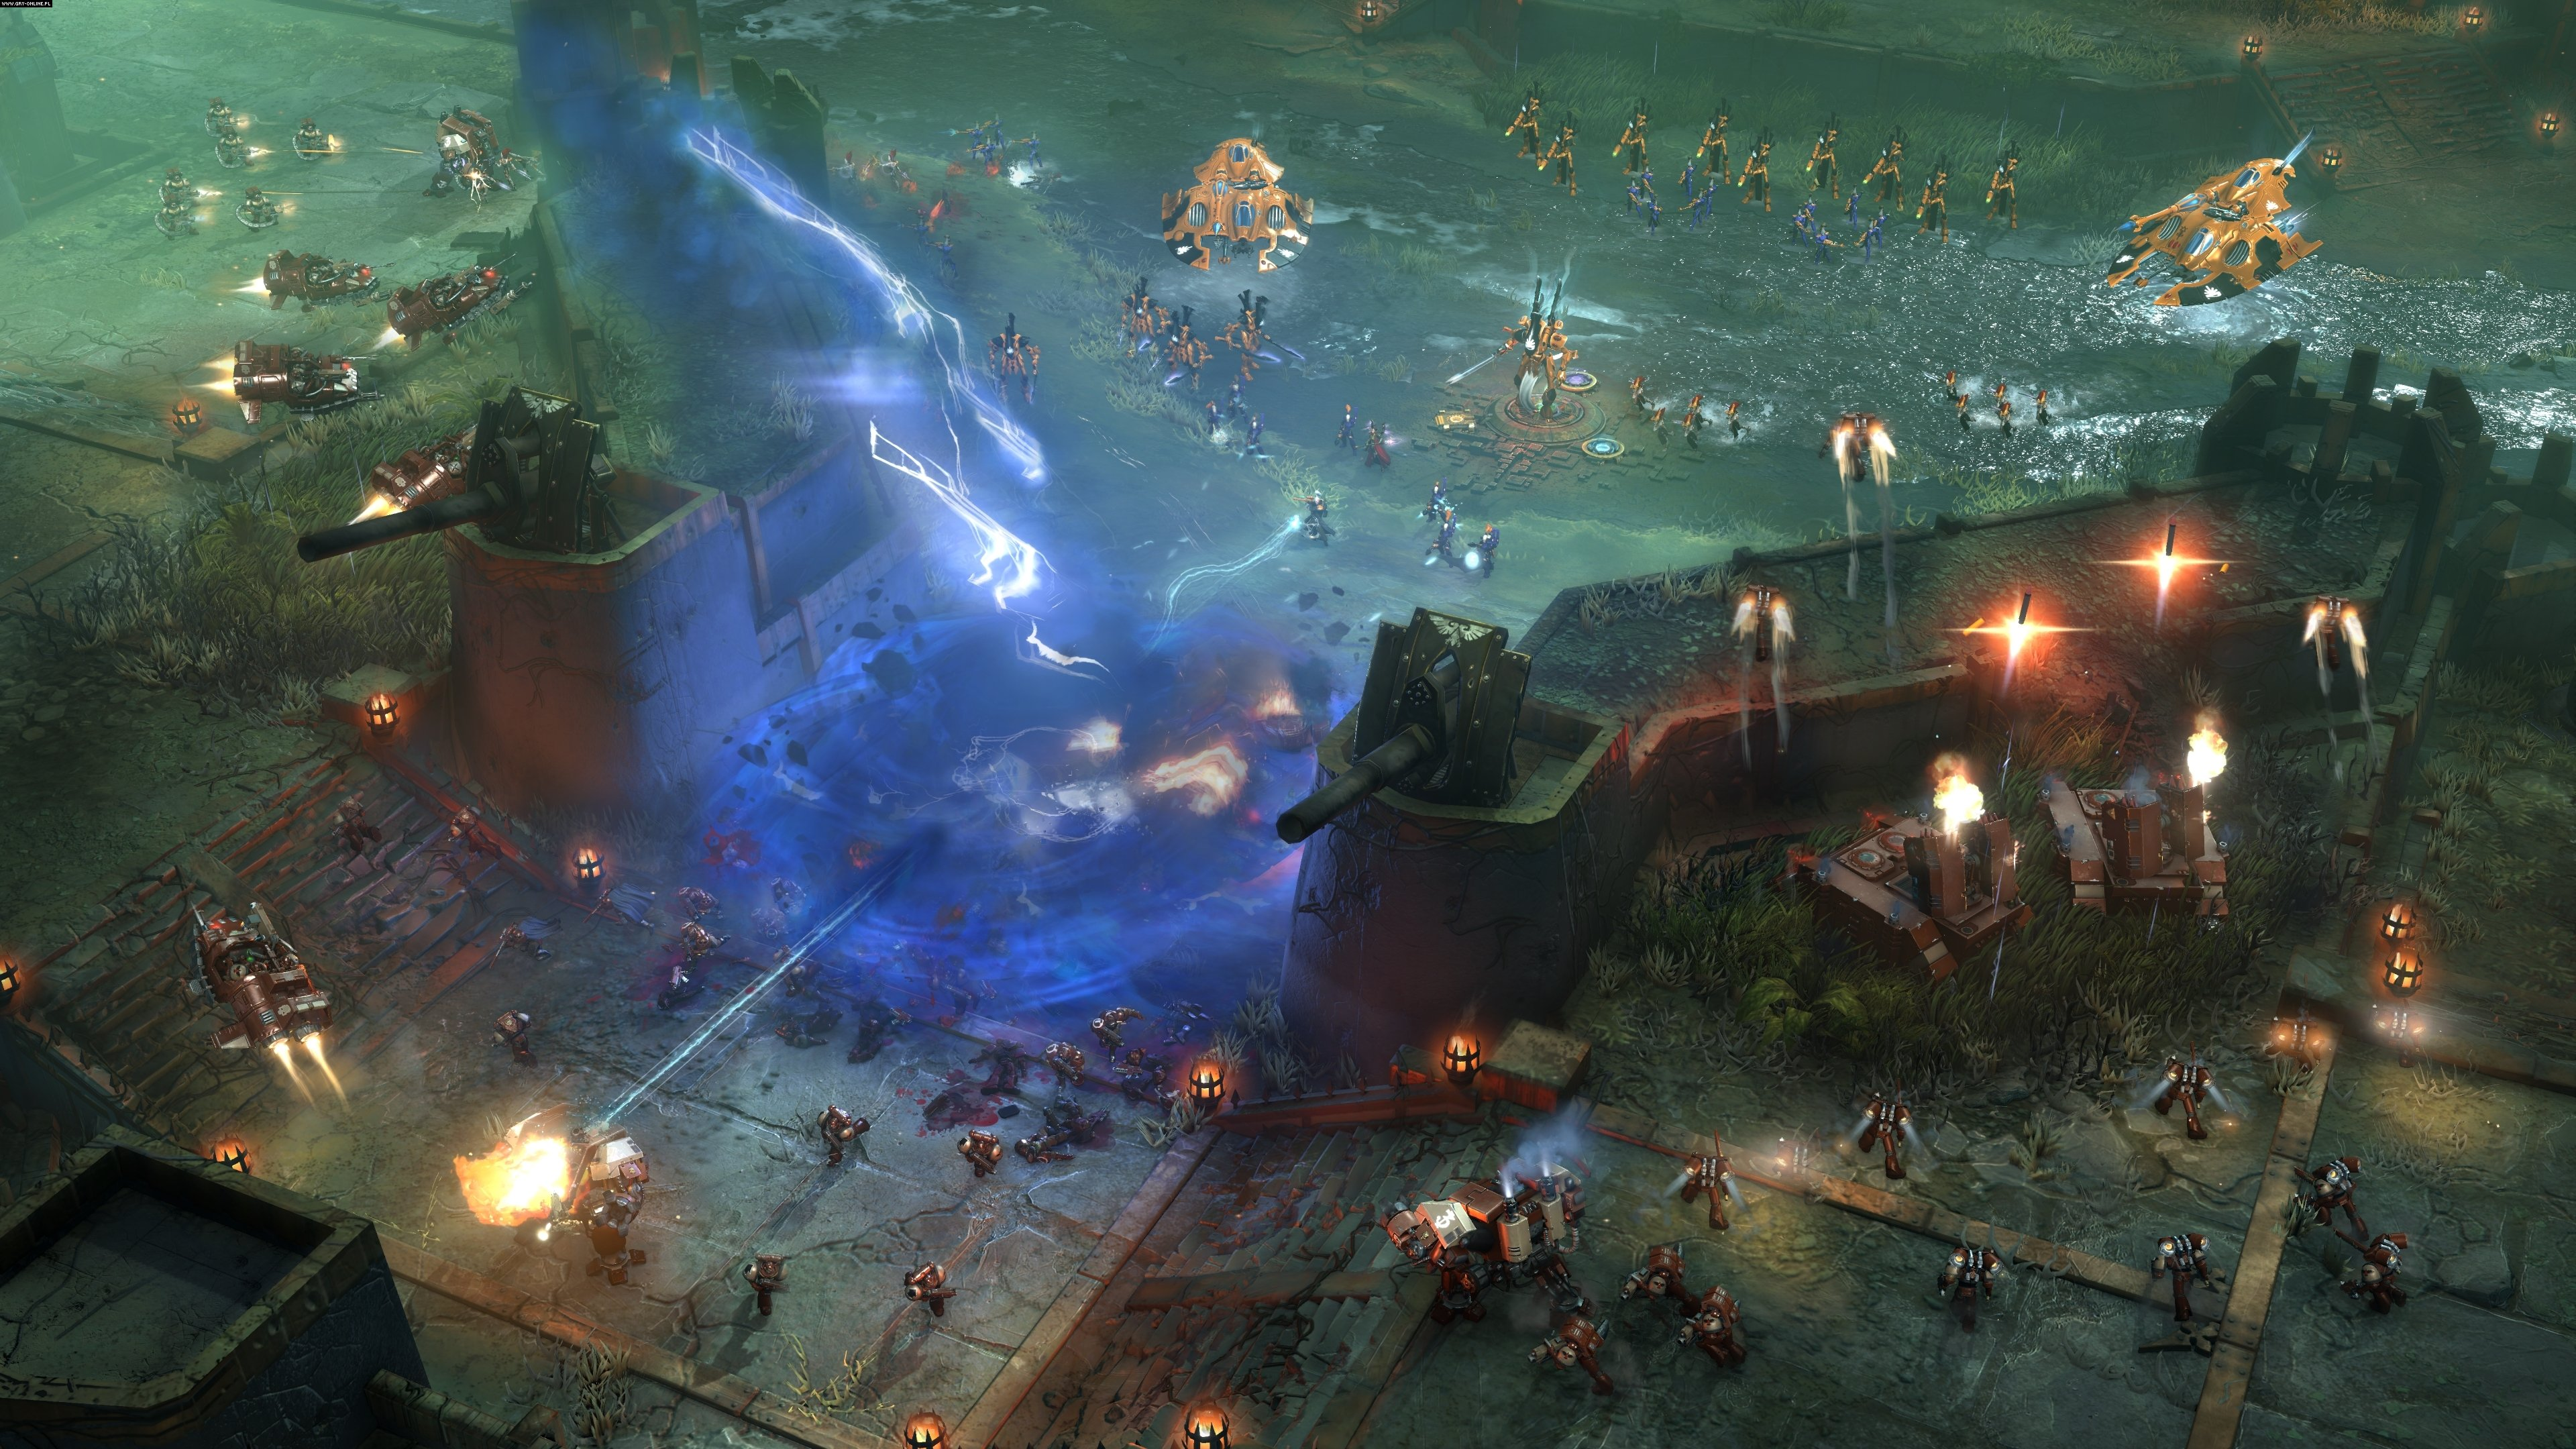 Warhammer 40,000: Dawn of War III PC Gry Screen 12/38, Relic Entertainment, SEGA